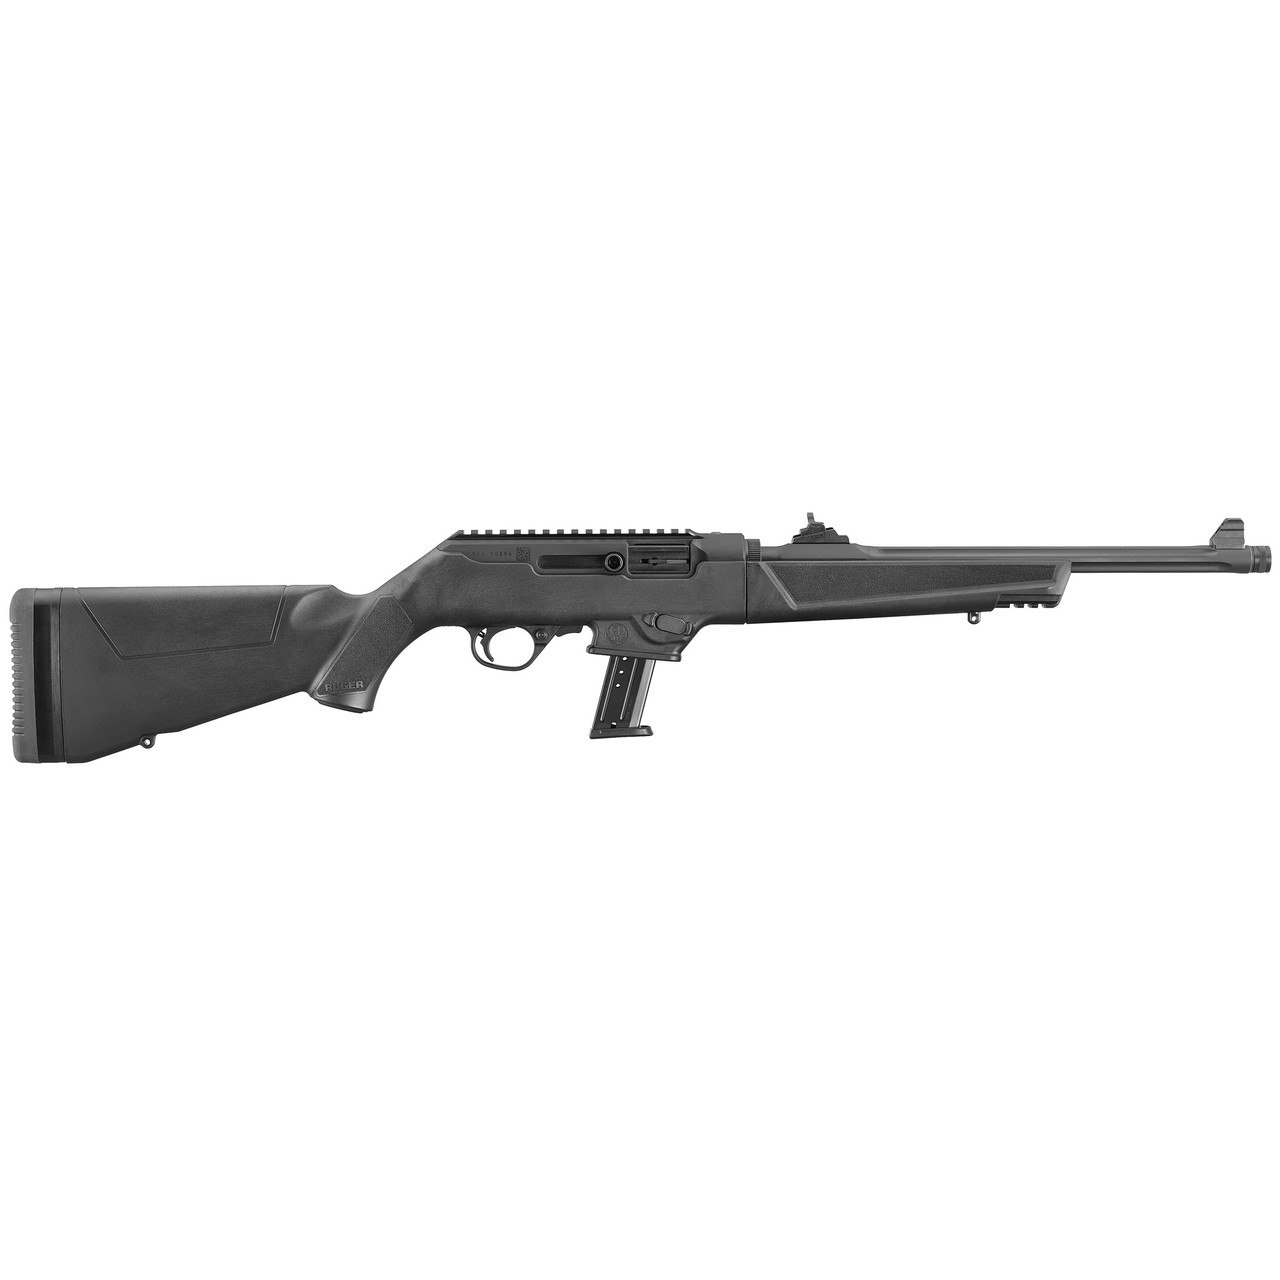 Ruger PC Carbine (Fluted, Threaded, Heavy Barrel) CALIFORNIA LEGAL - .40 S&W